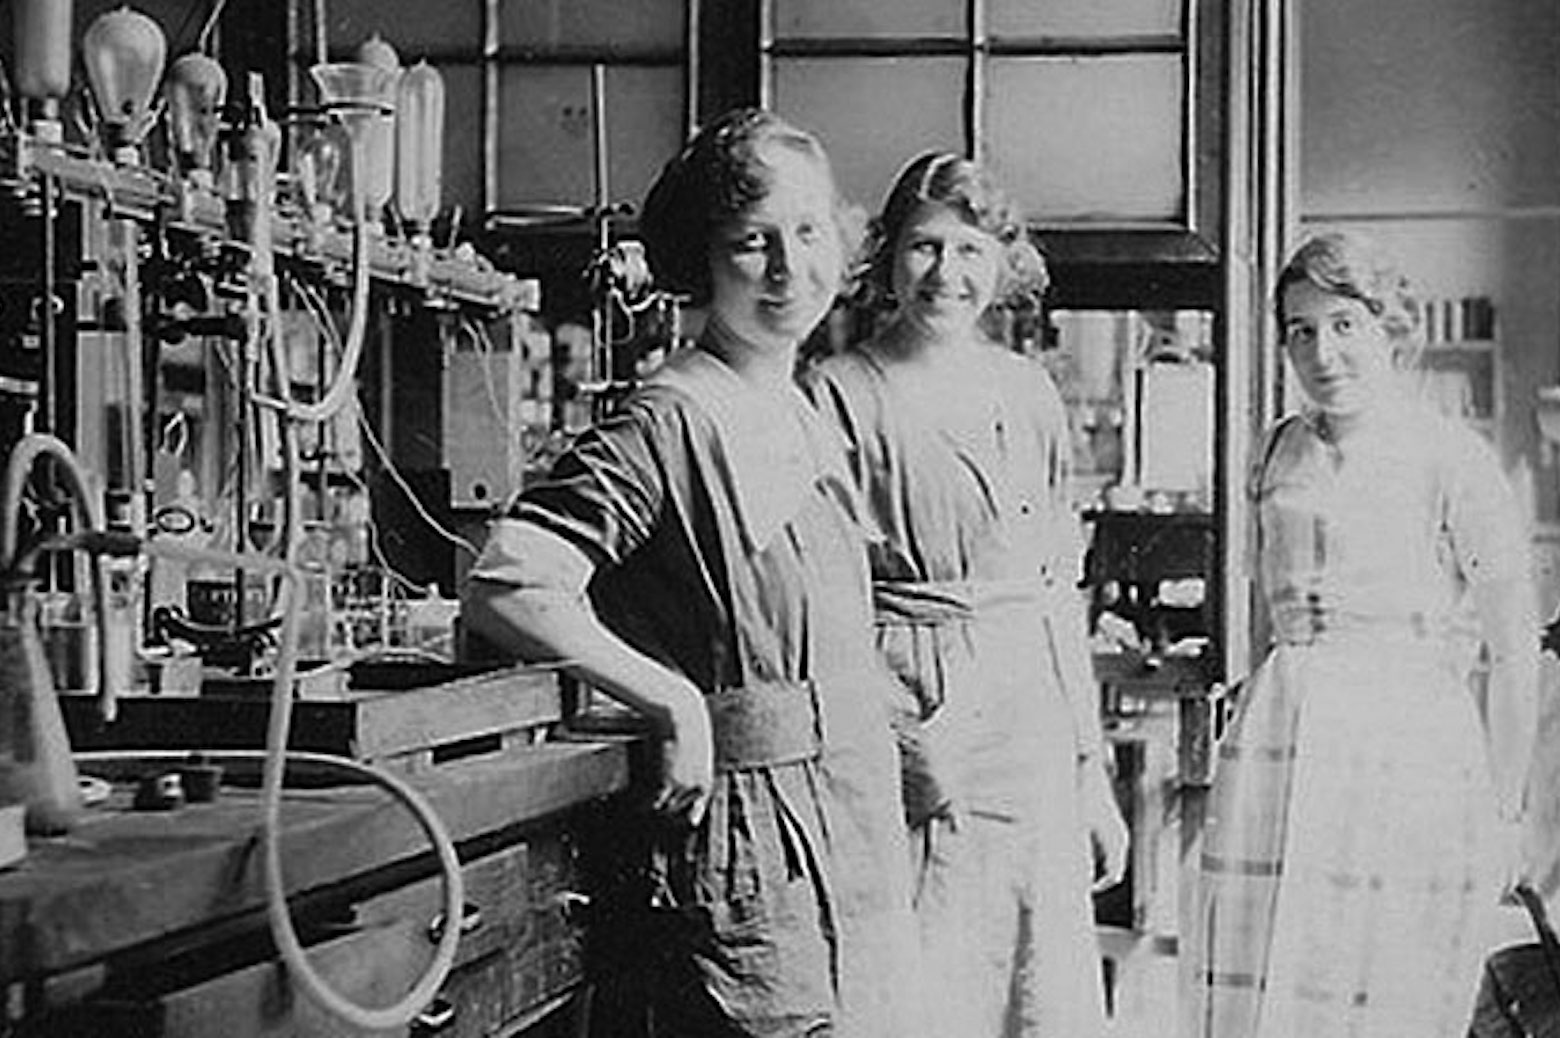 coworkers in the GE Research Laboratory in the 1920s